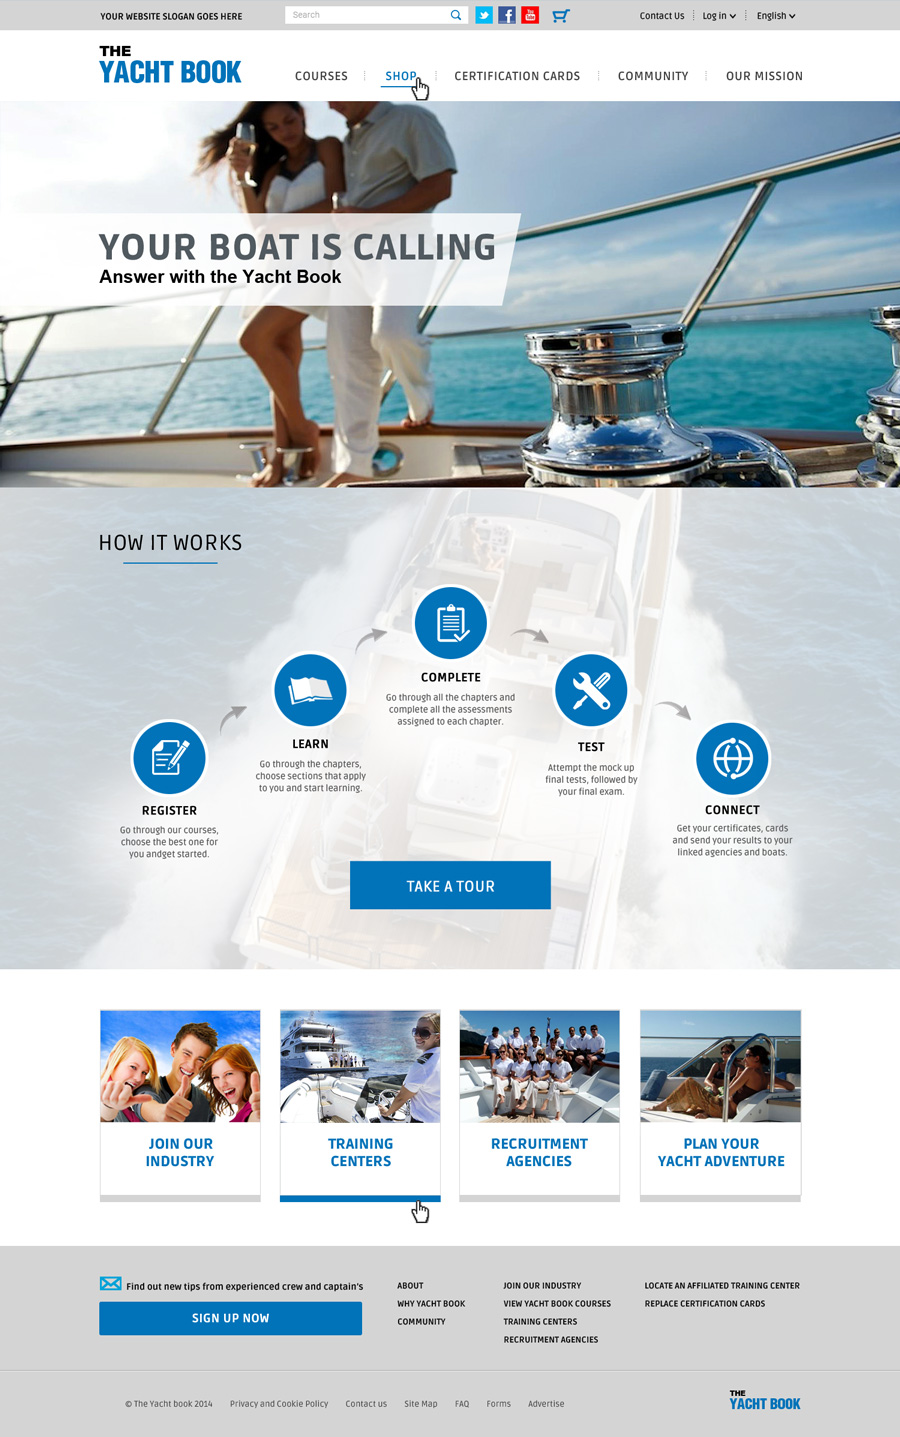 The Yacht Book landing page layout logo design